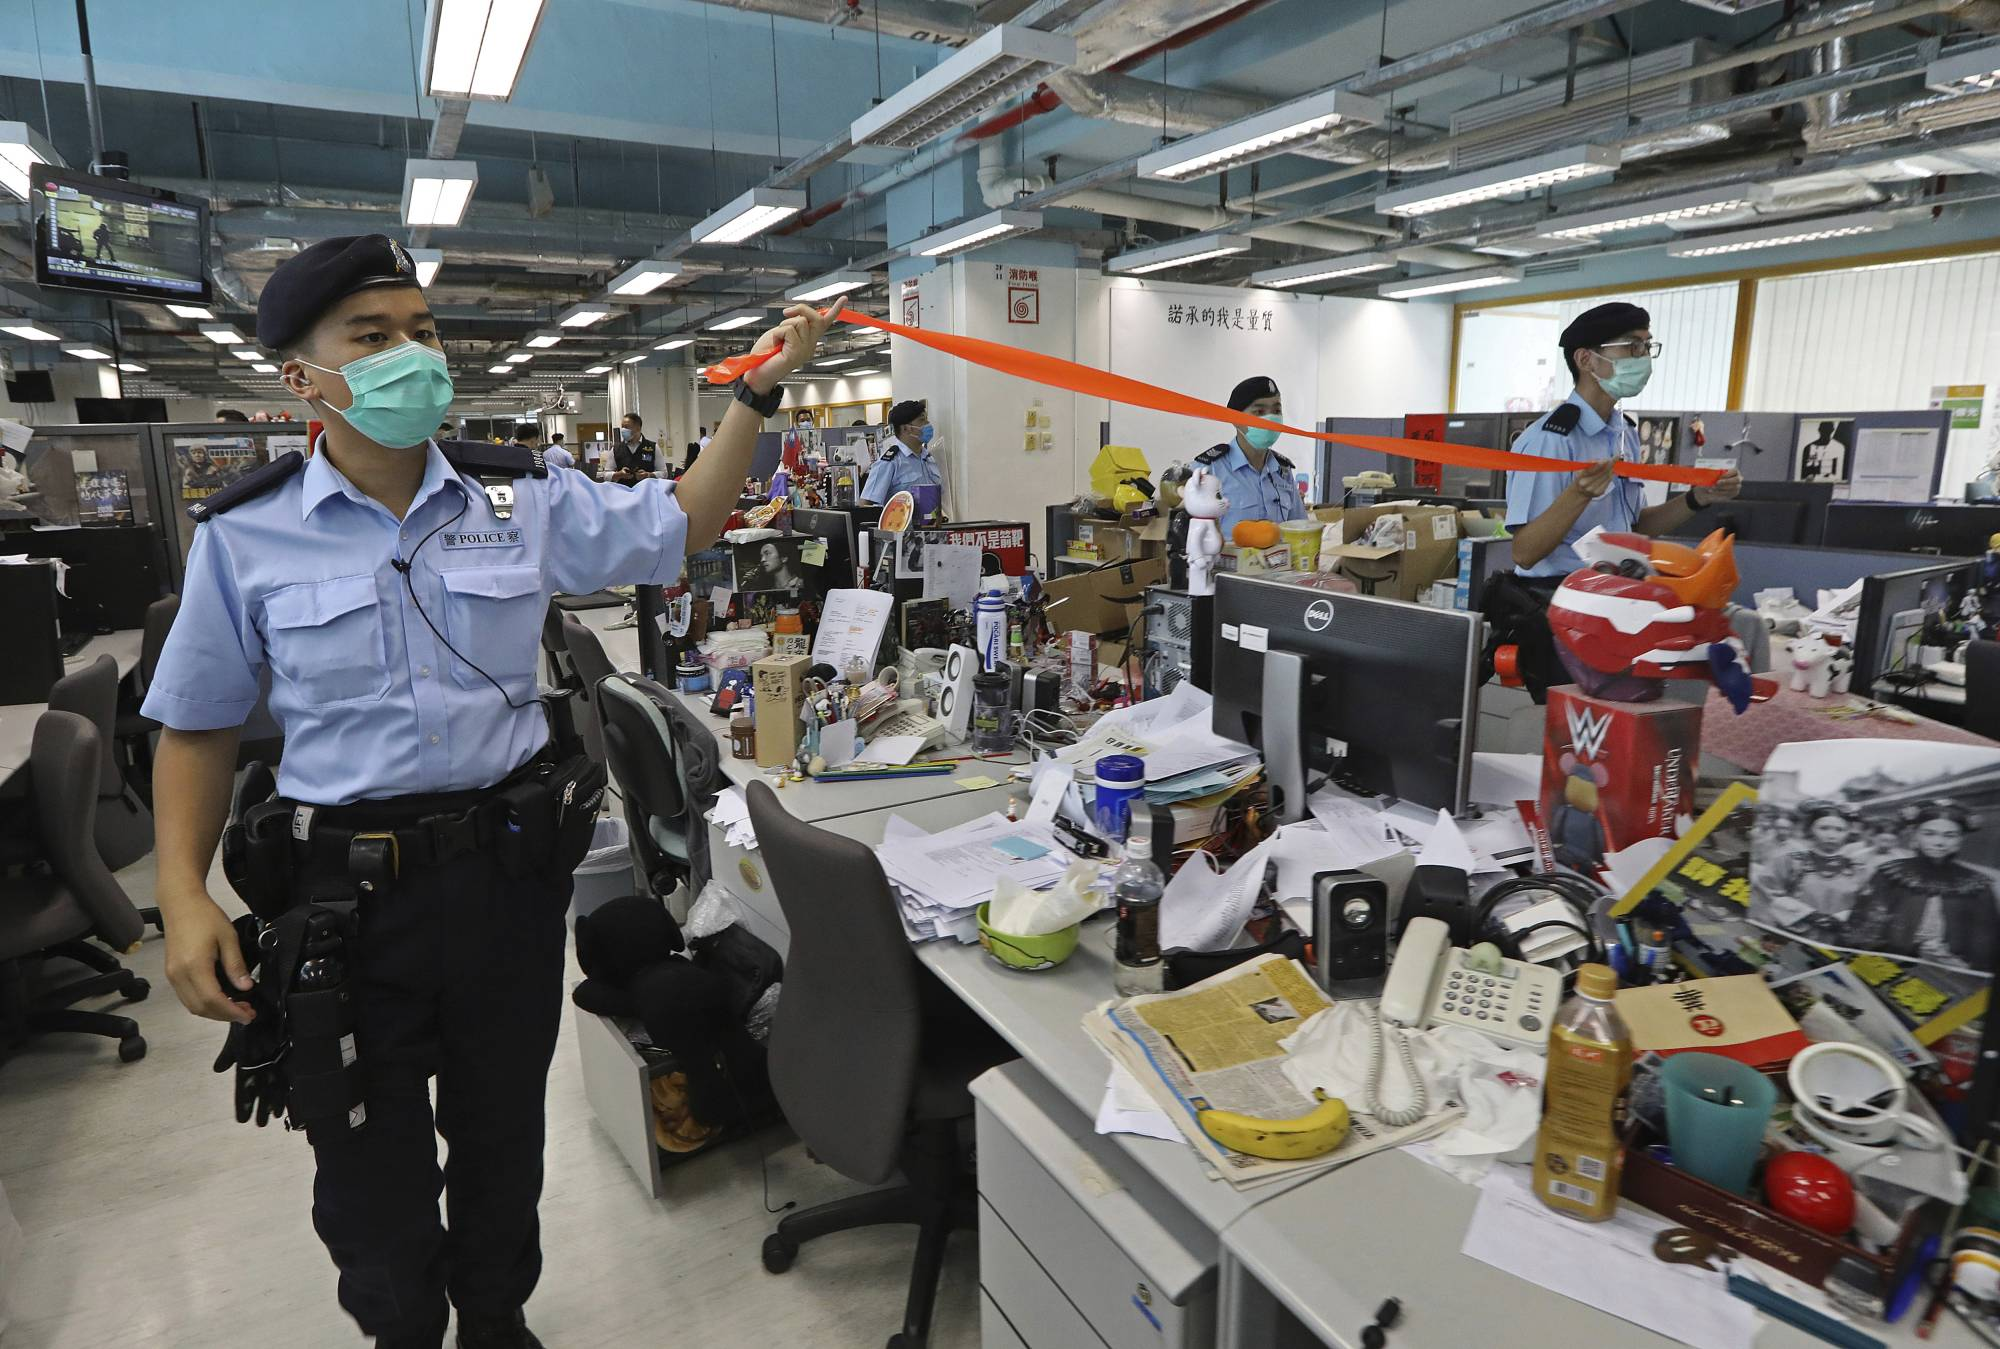 Hong Kong police officers enter the Apple Daily headquarters on the day the newspaper's founder, Jimmy Lai, was arrested. | Apple Daily / via AP